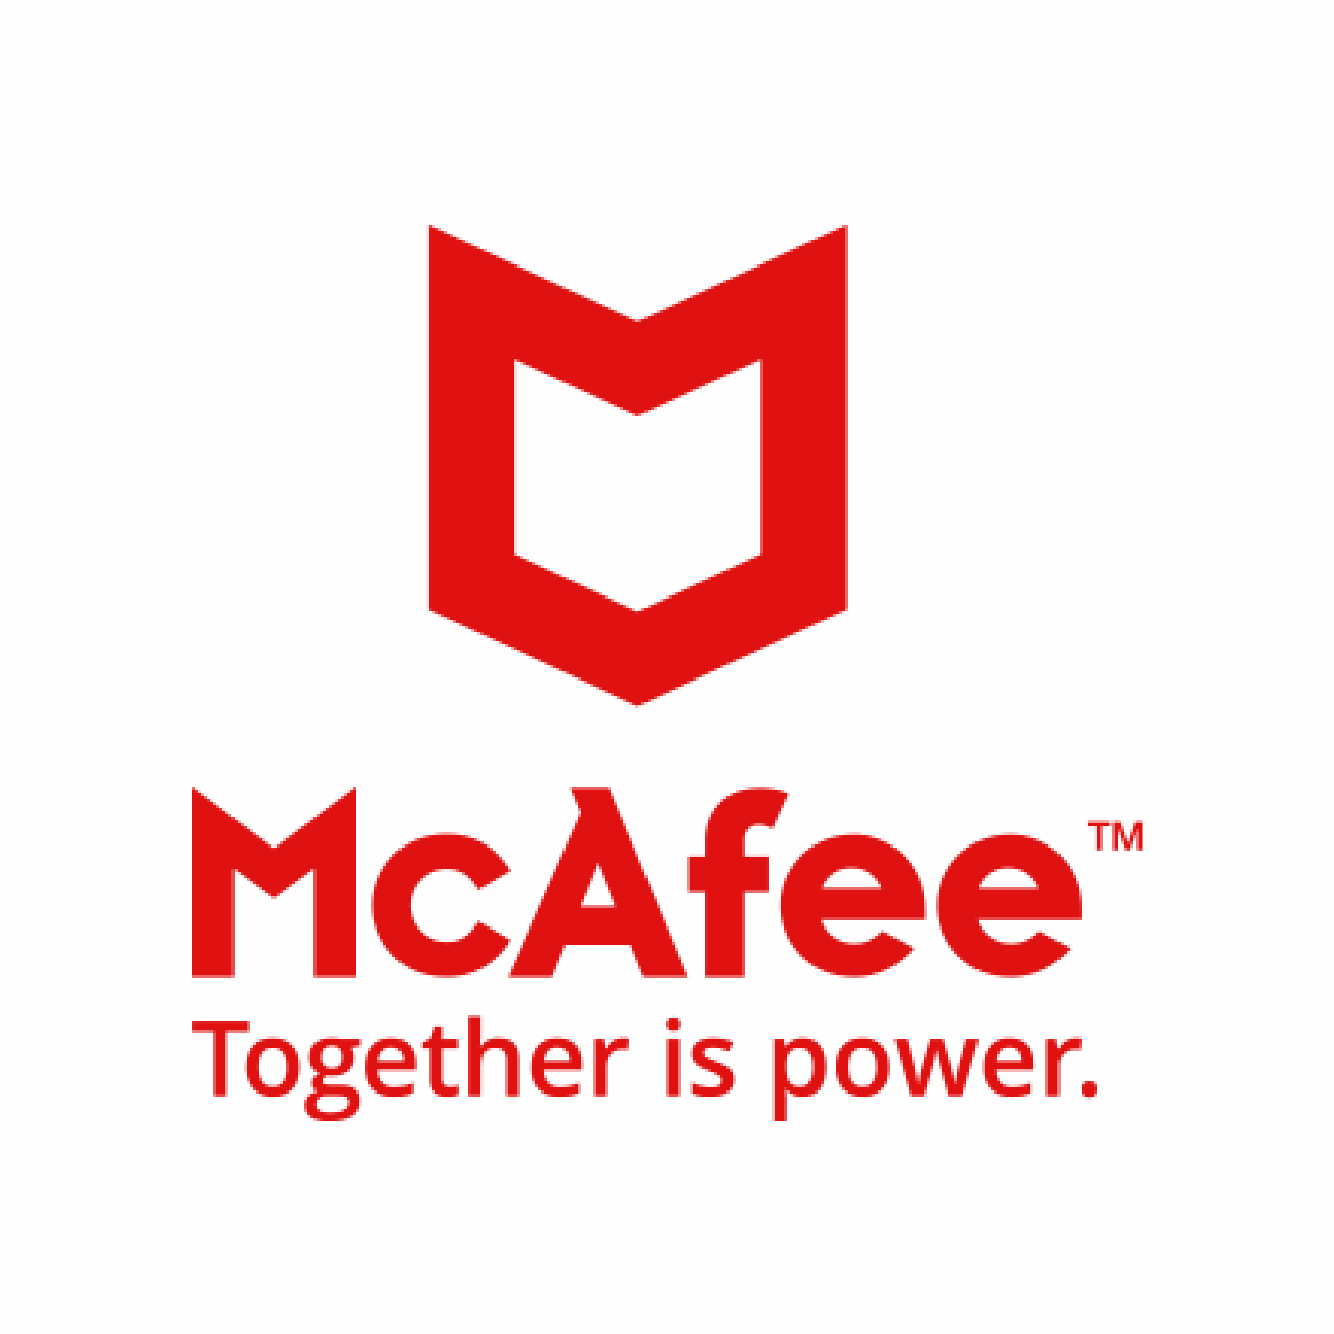 https://www.securetech.ae/wp-content/uploads/2019/02/21.MCAFEE.AXIS_.png